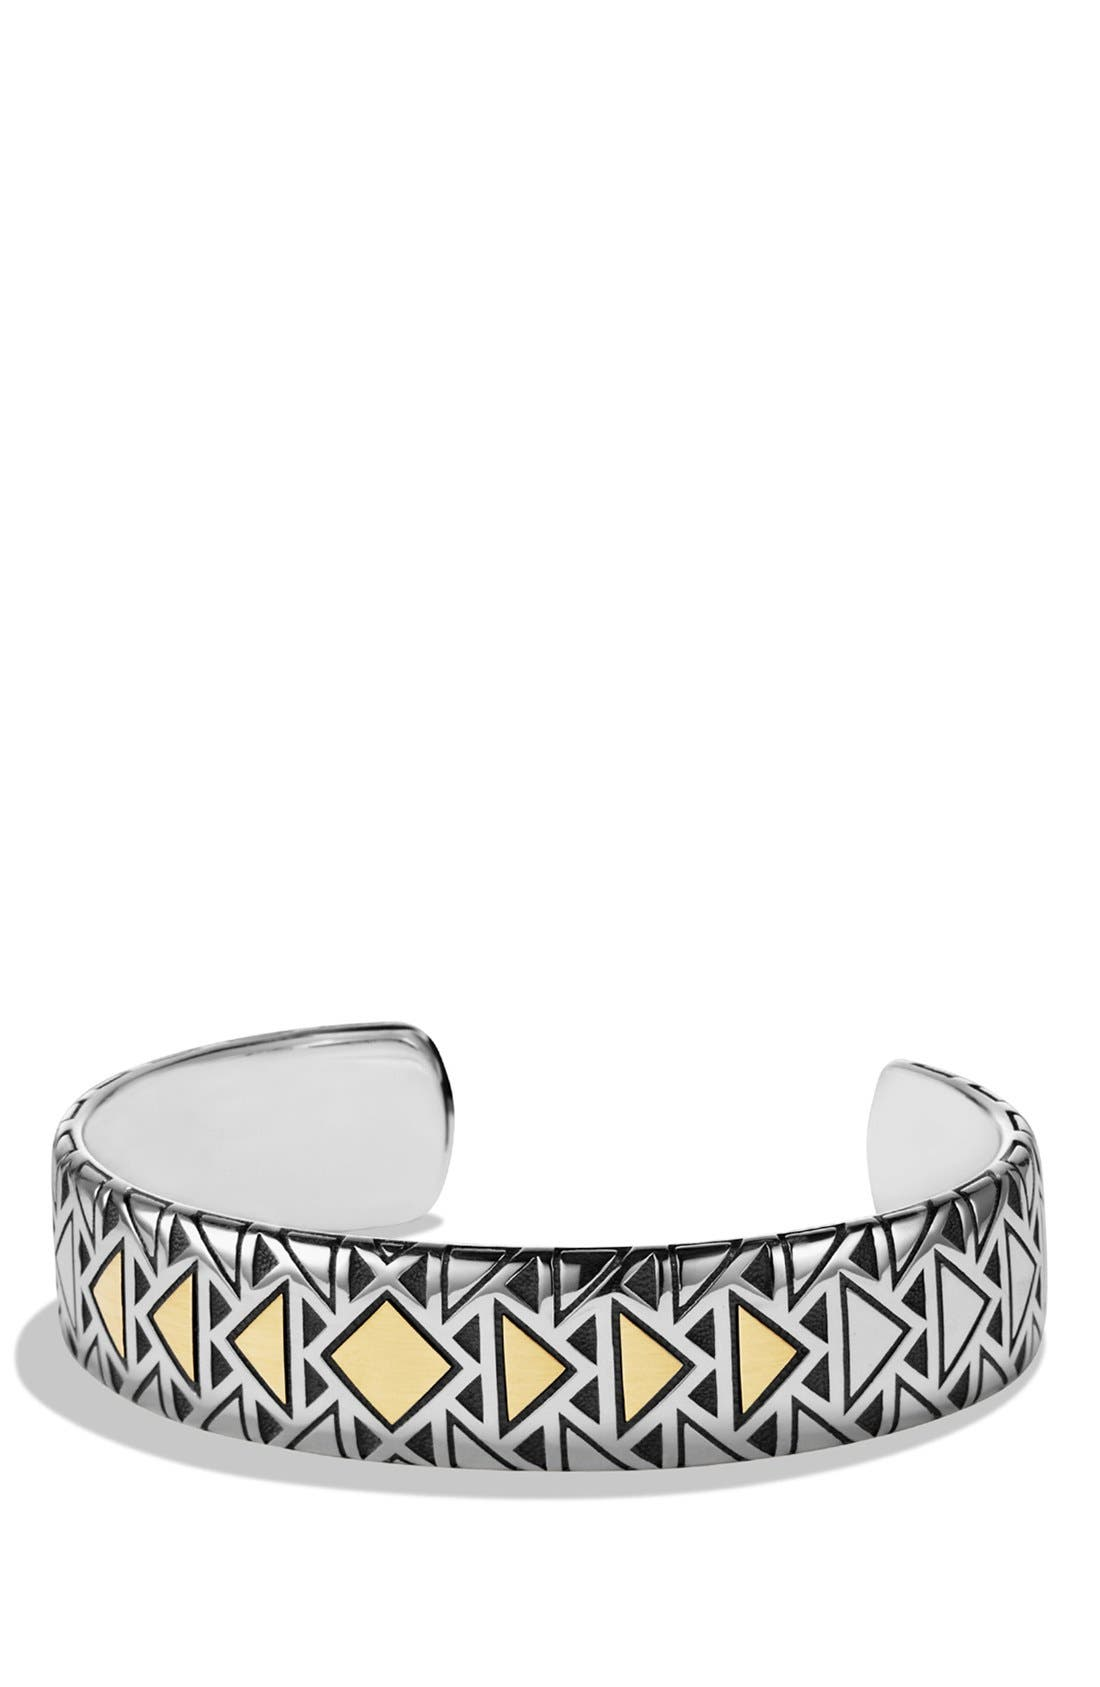 Main Image - David Yurman 'Frontier' Cuff Bracelet with 18K Gold